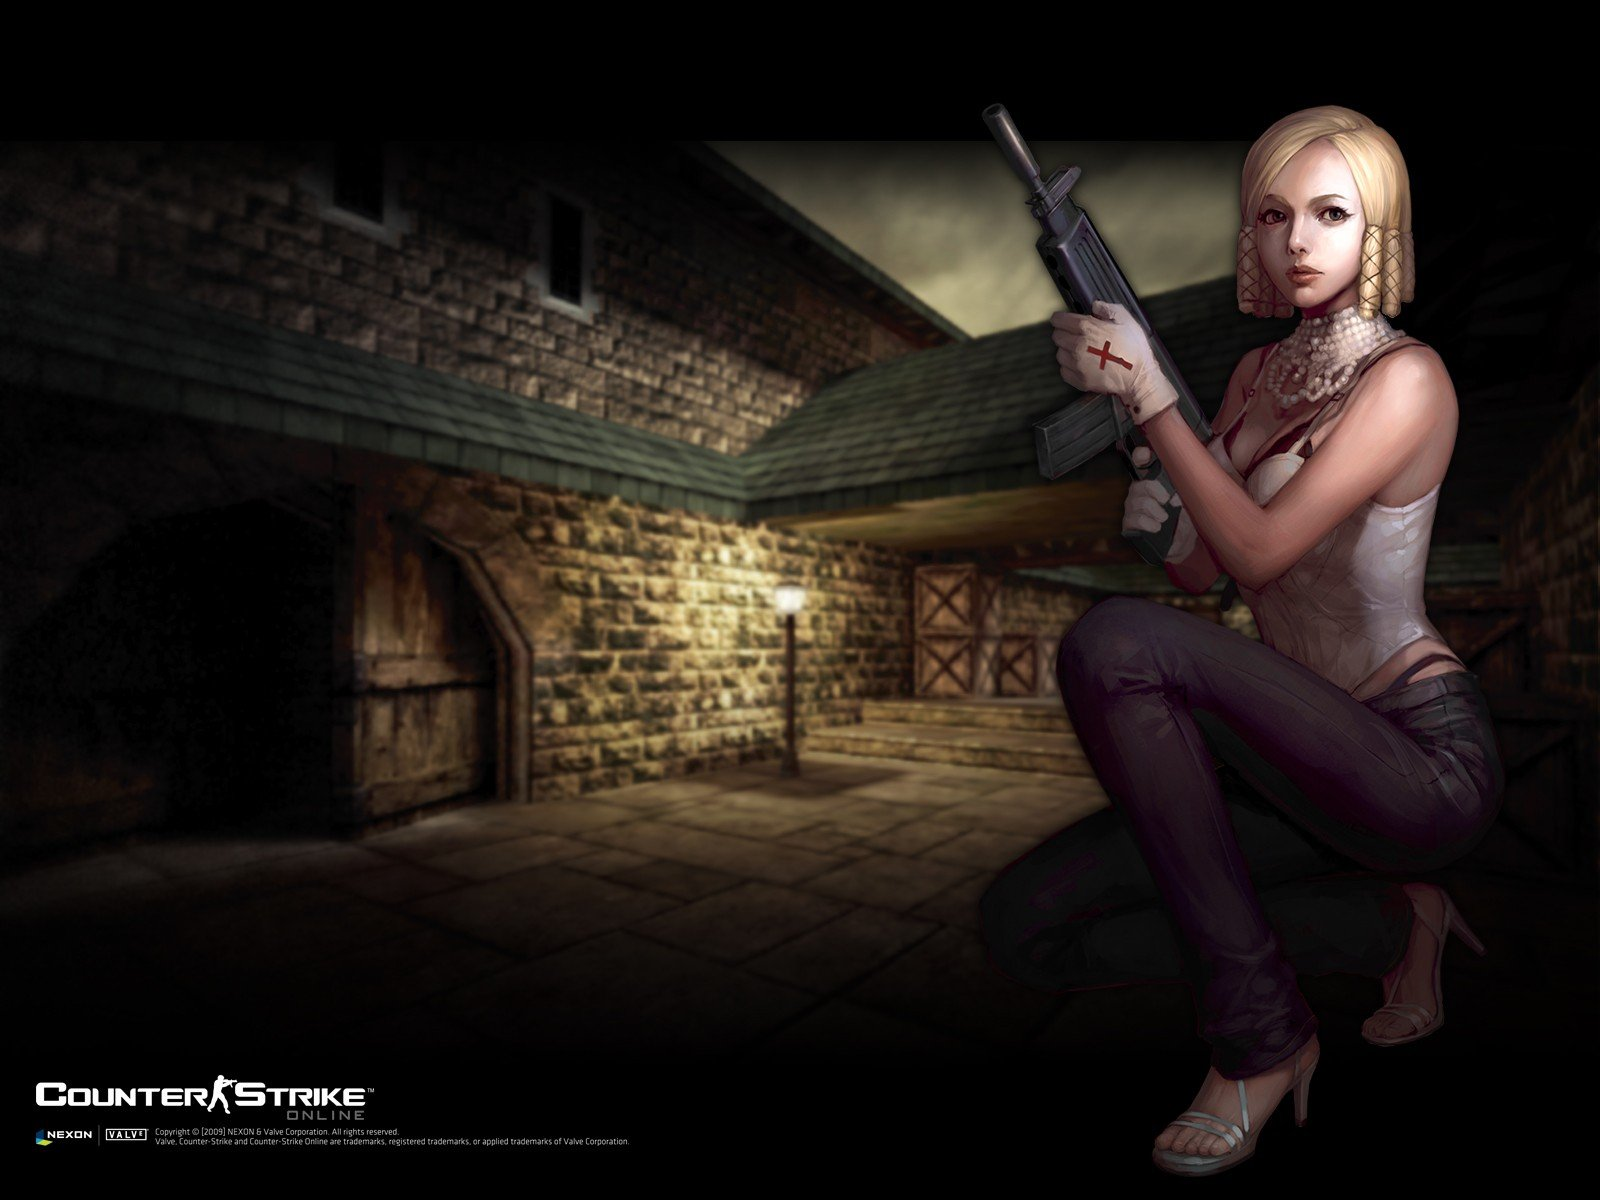 Counter strike porn pic naked picture